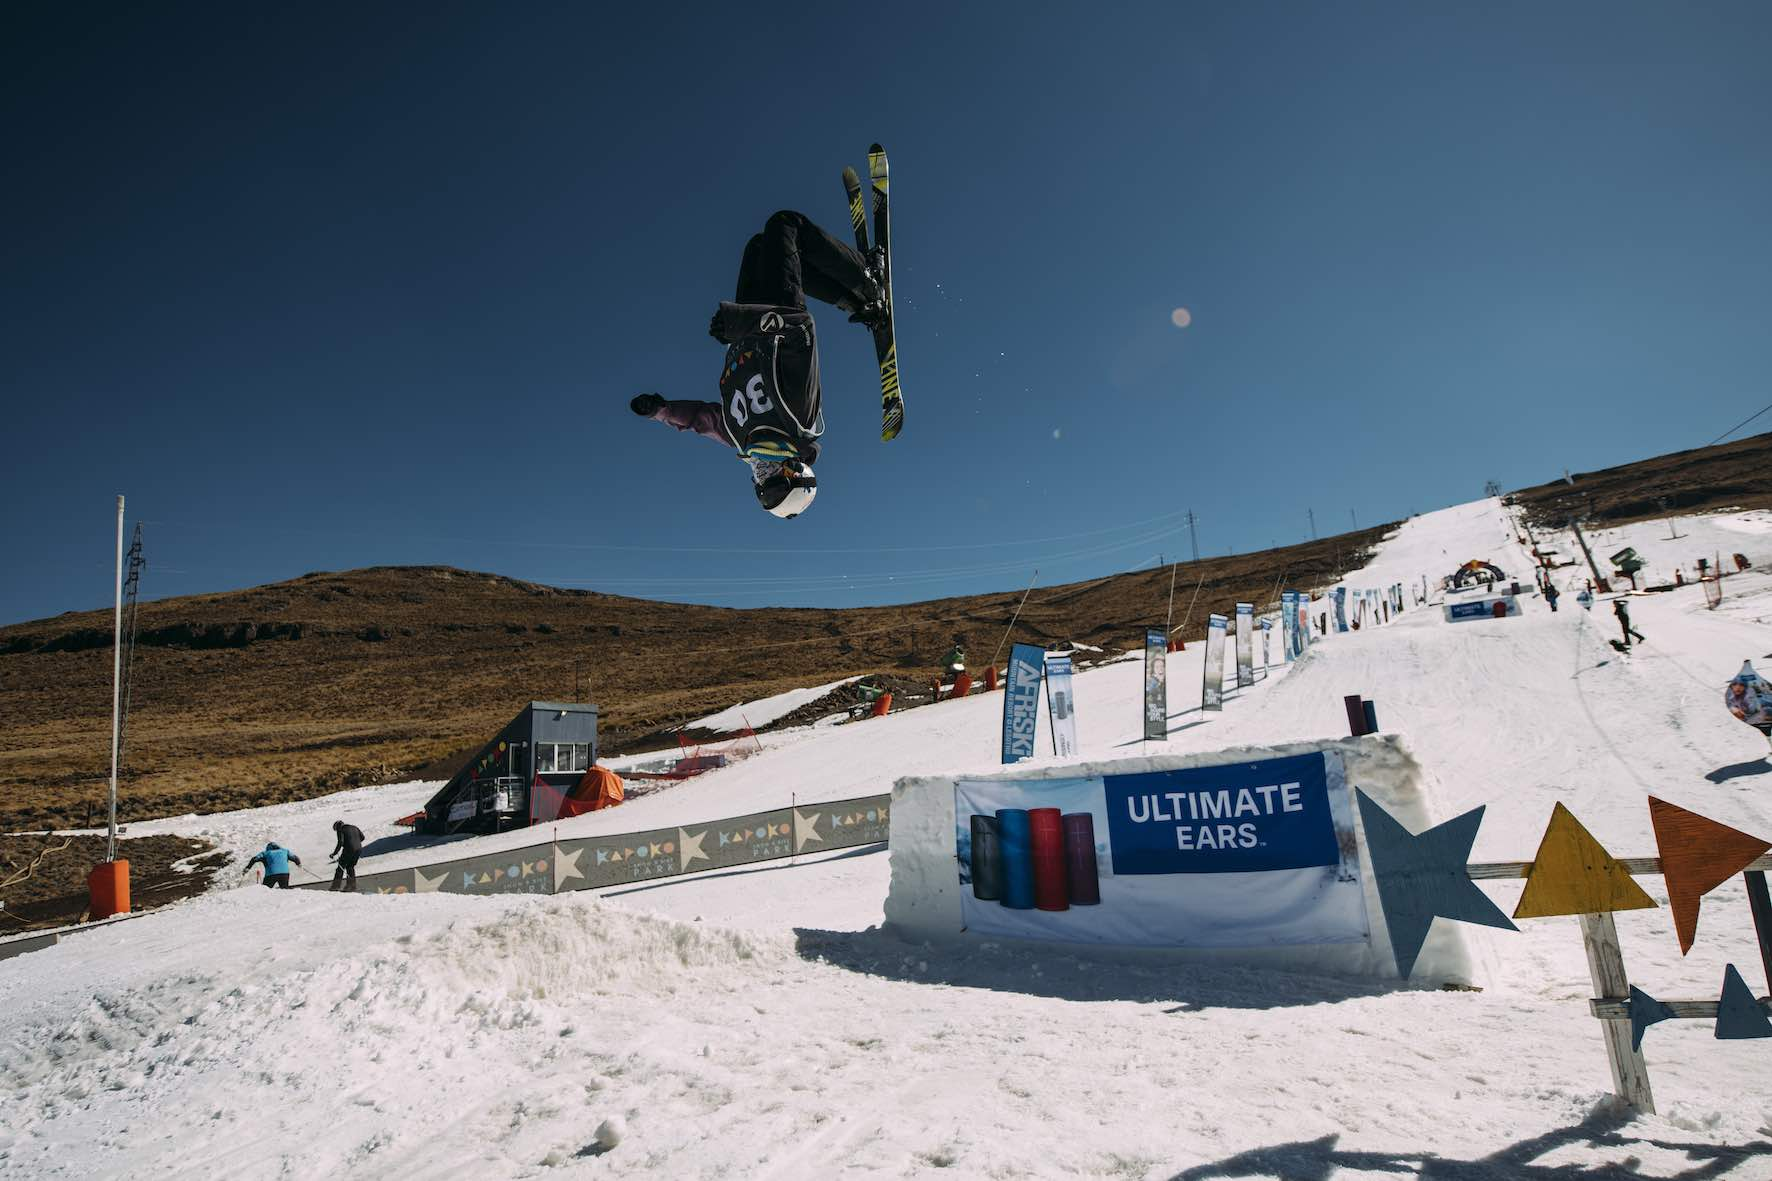 Linze Veenstra skiing in the 2019 2019 Ultimate Ears Winter Whip Snowboard and Ski Festival